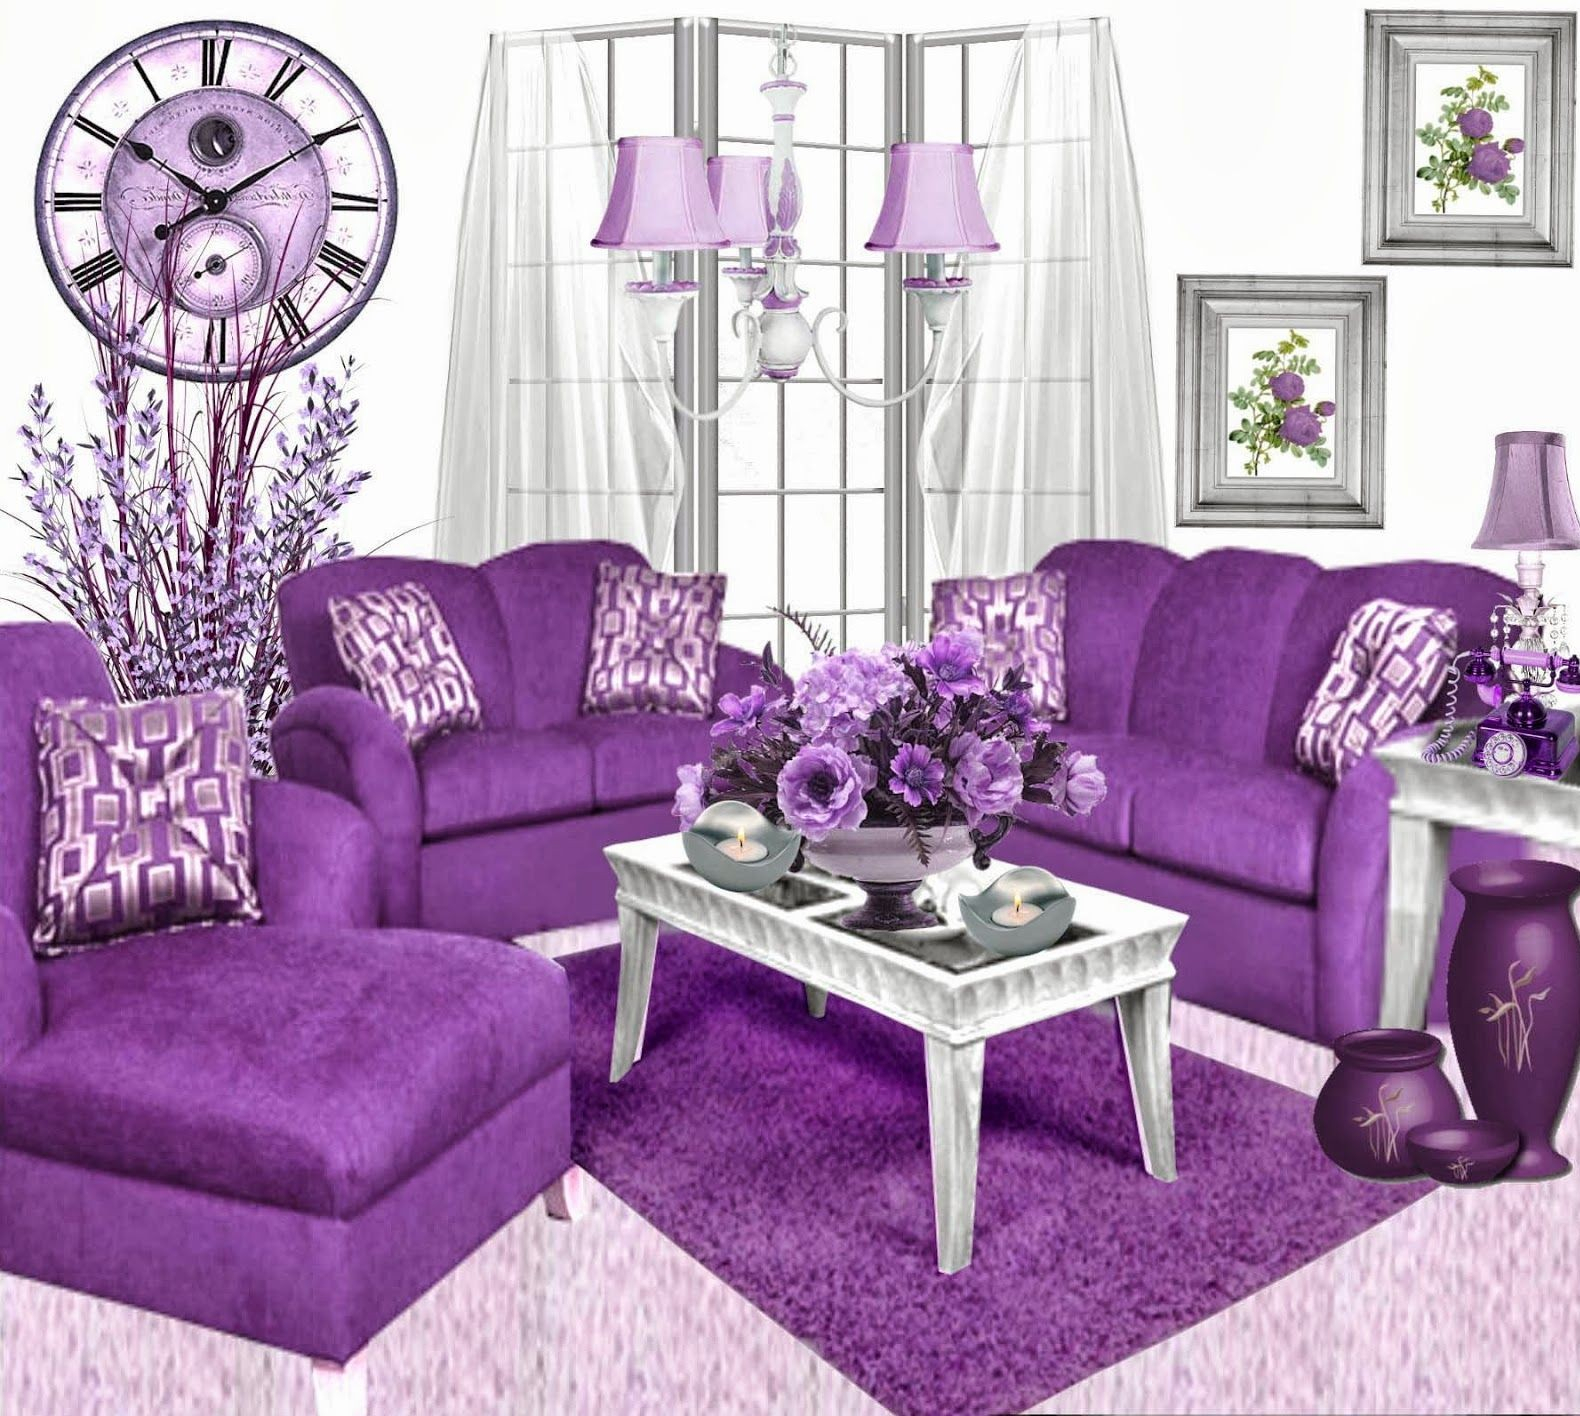 Tips On Decorating Purple Living Room Decorating Room throughout 12 Clever Ways How to Upgrade Purple Living Room Set